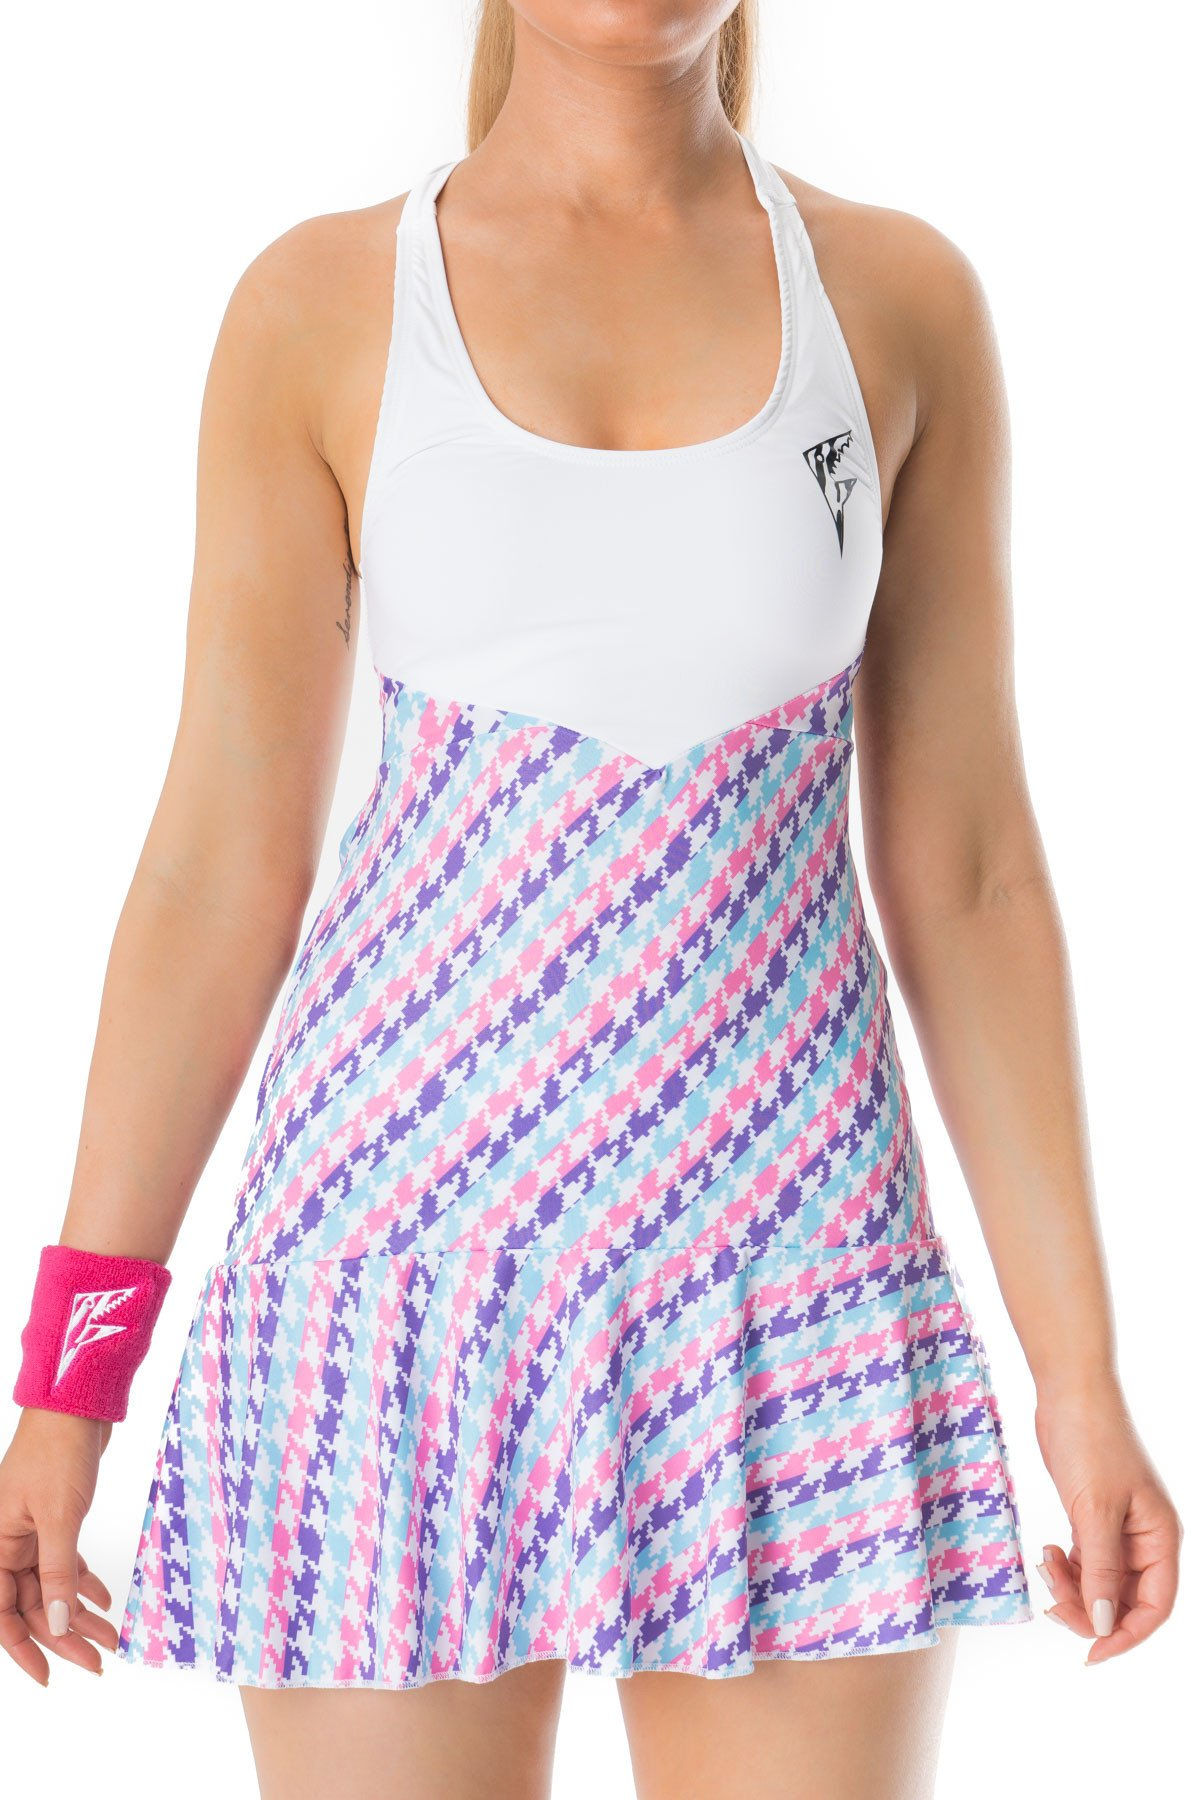 Party Rock Clothing★パーティーロッククロッシング ★Party Rock Tennis Dress (ピンク・パープル)